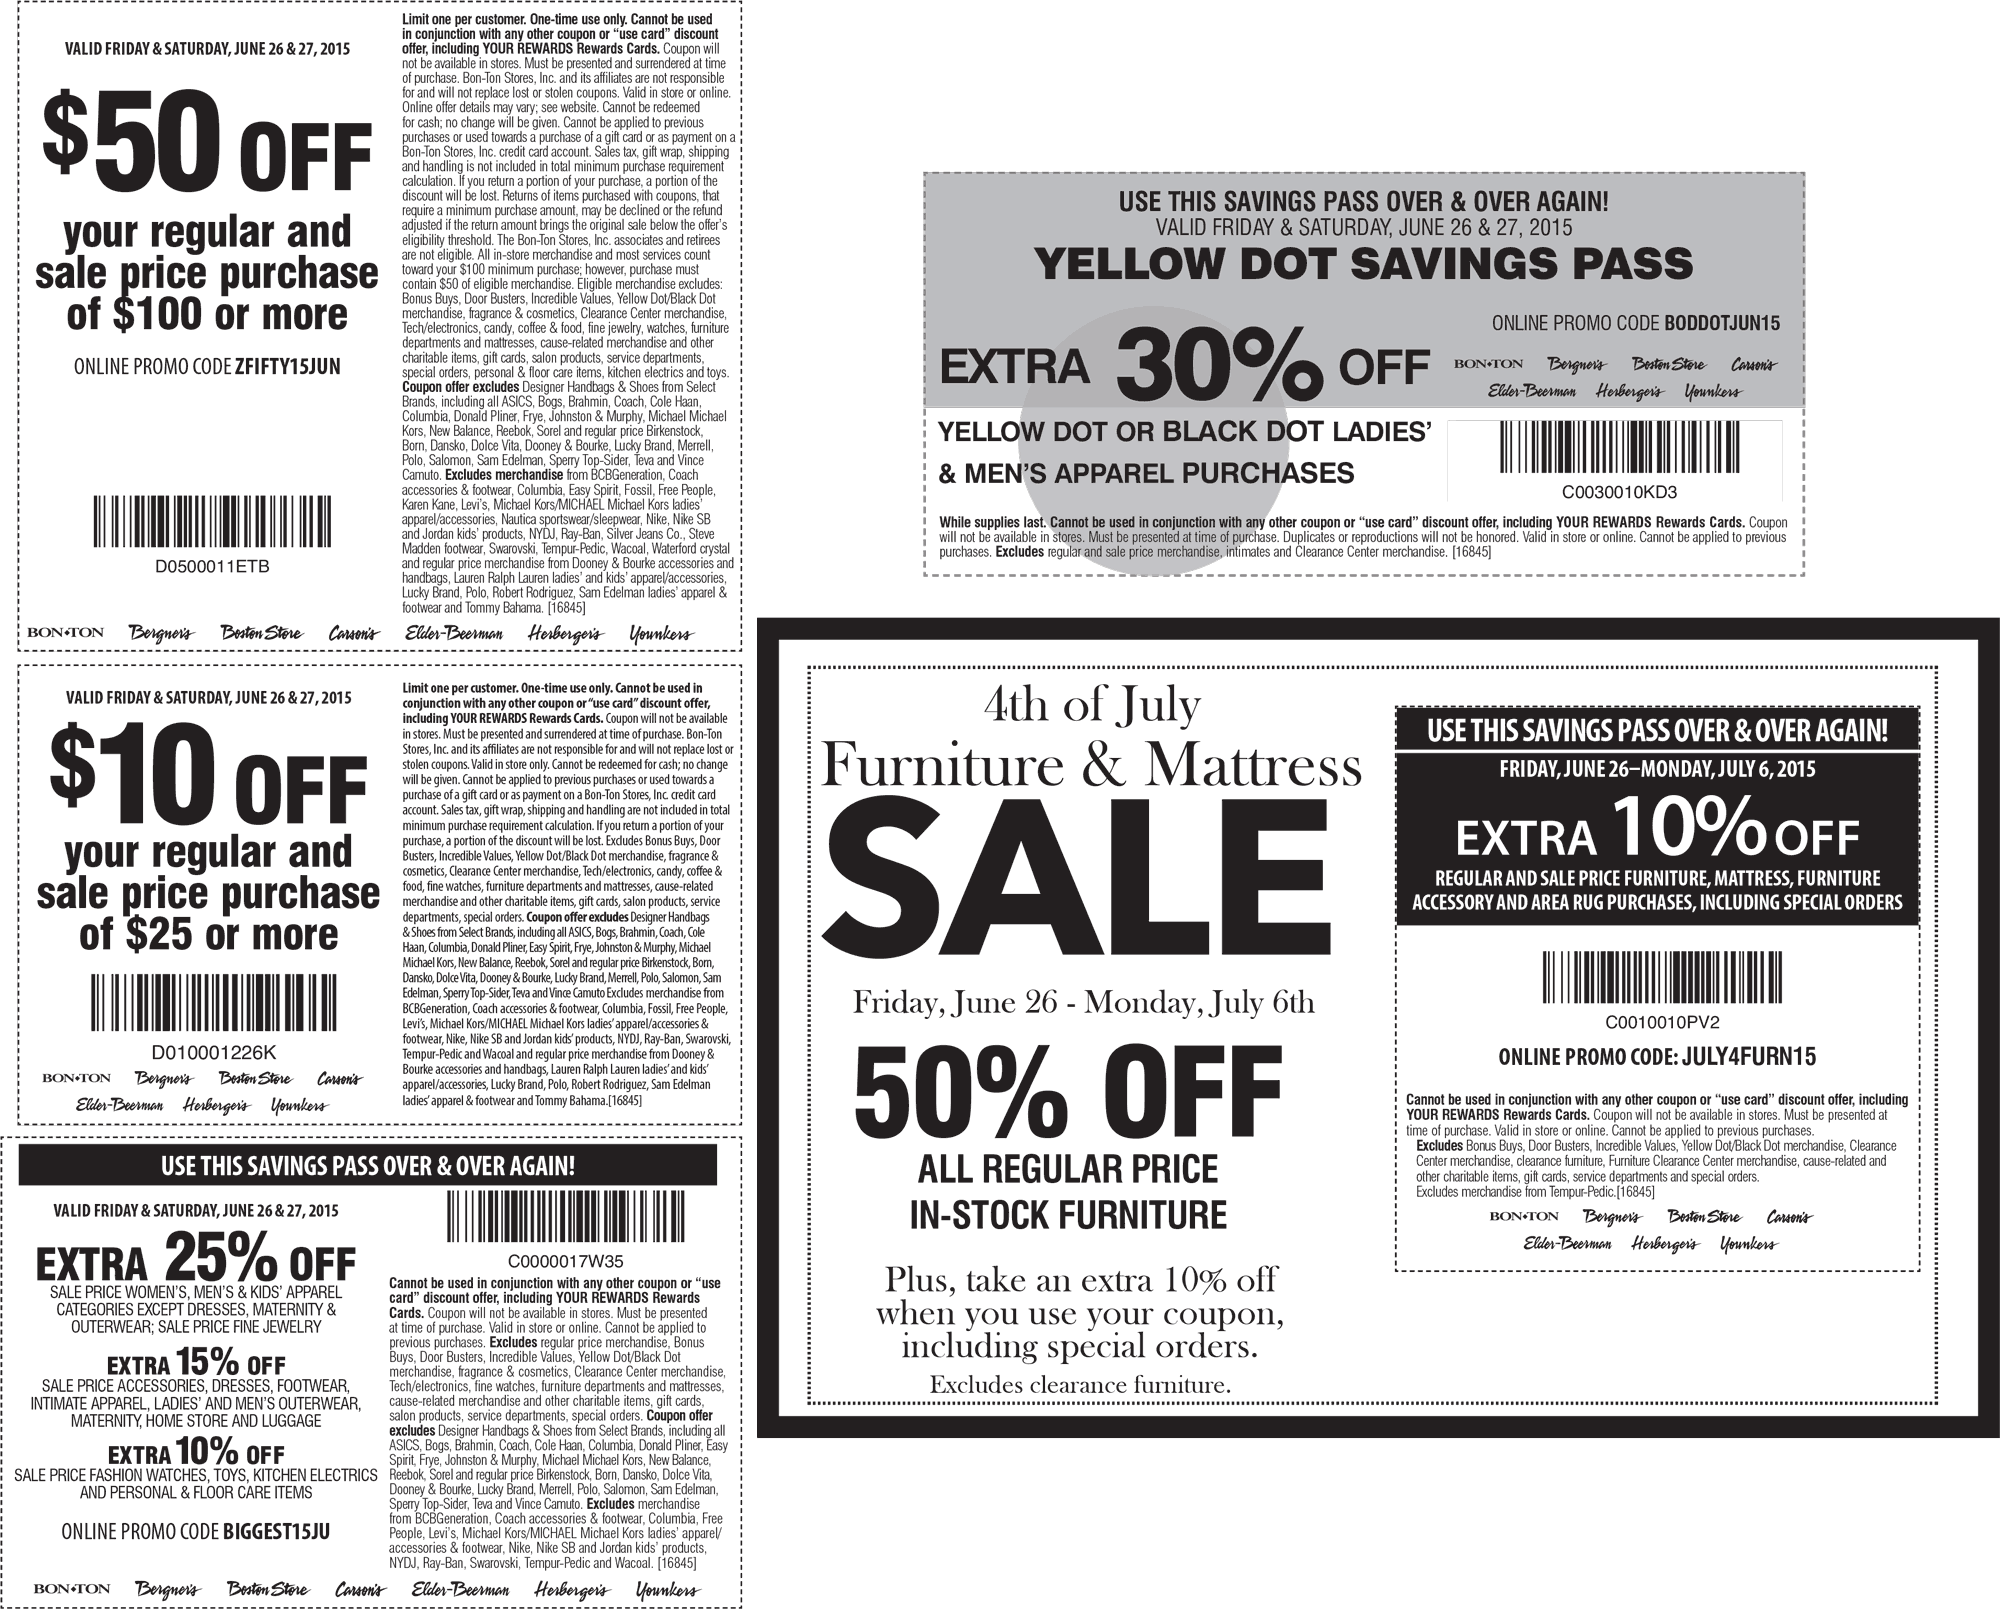 Carsons Coupon February 2017 $50 off $100 & more today at Carsons, Bon Ton & sister stores, or online via promo code ZFIFTY15JUN